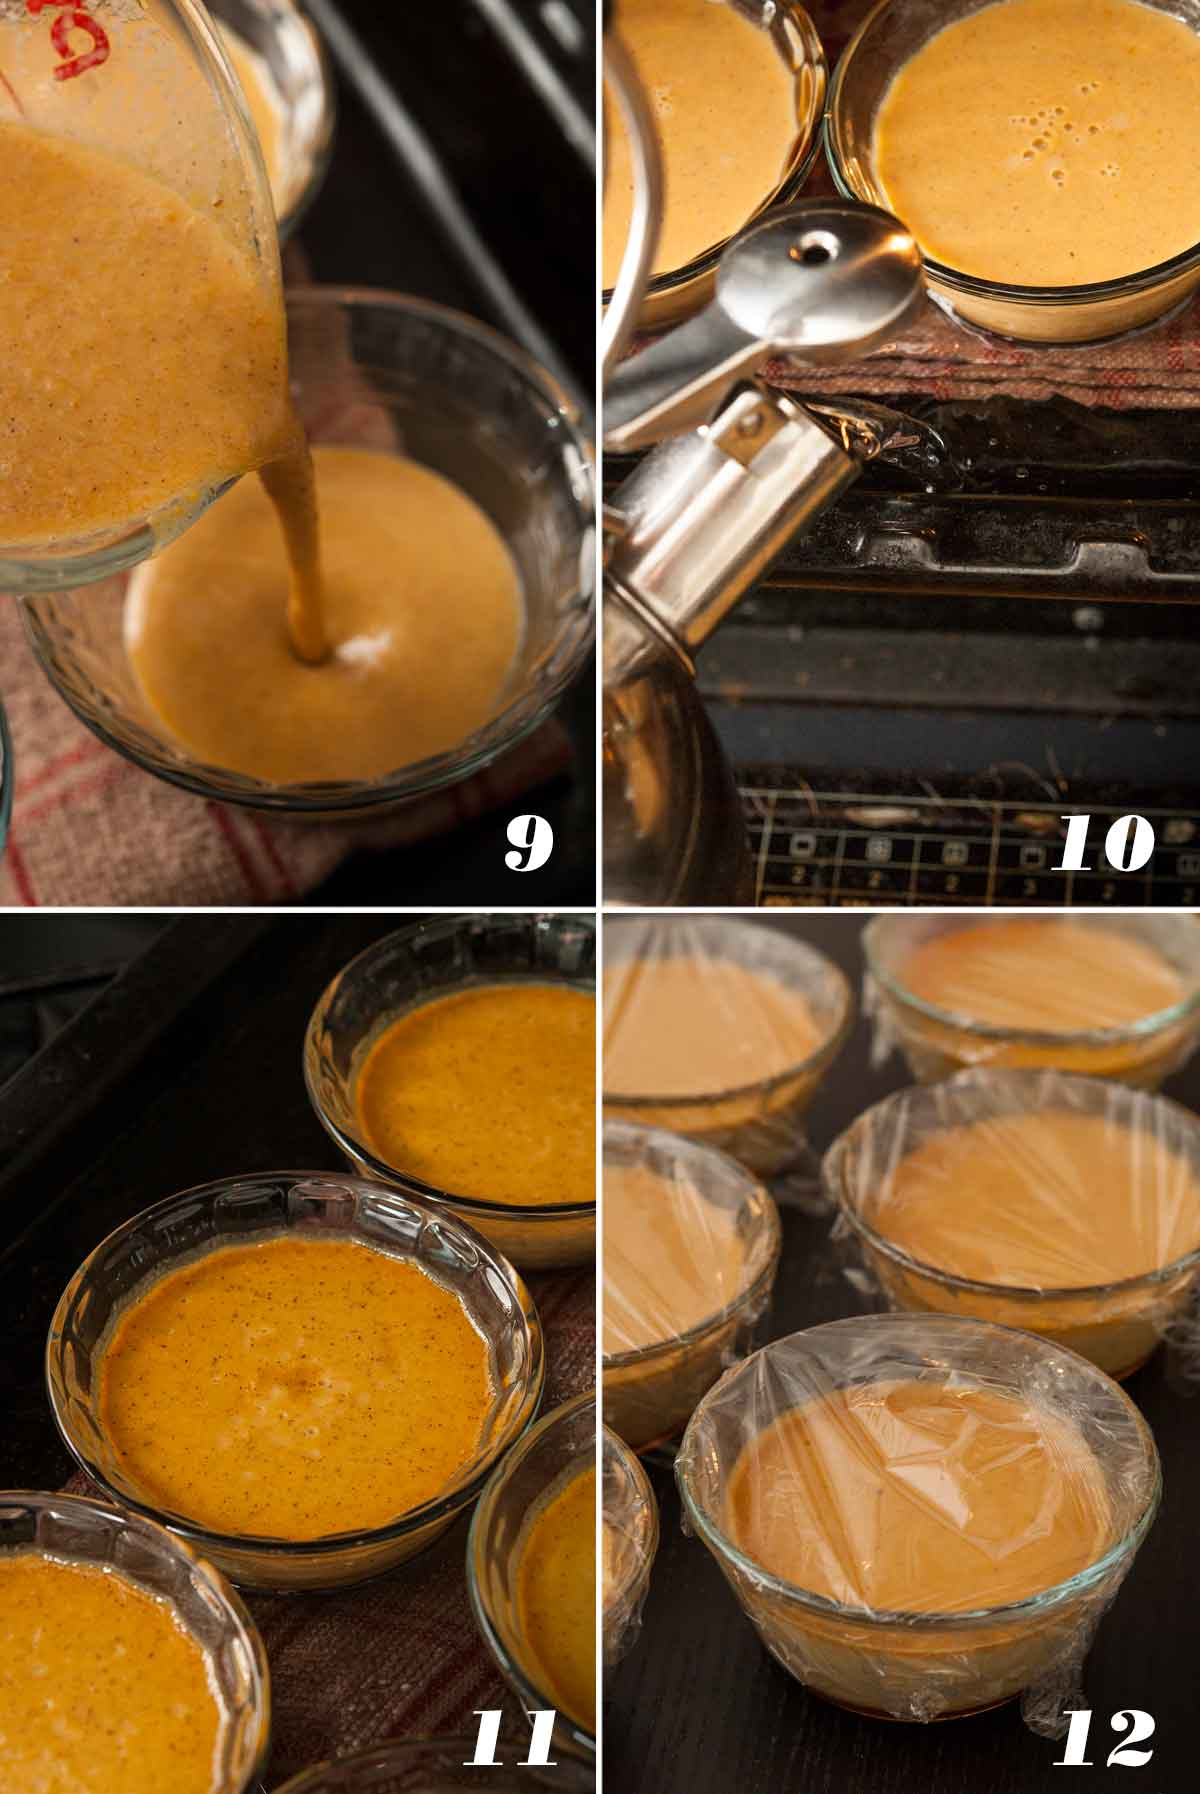 A collage of 4 numbered images showing how to pour and bake flan.